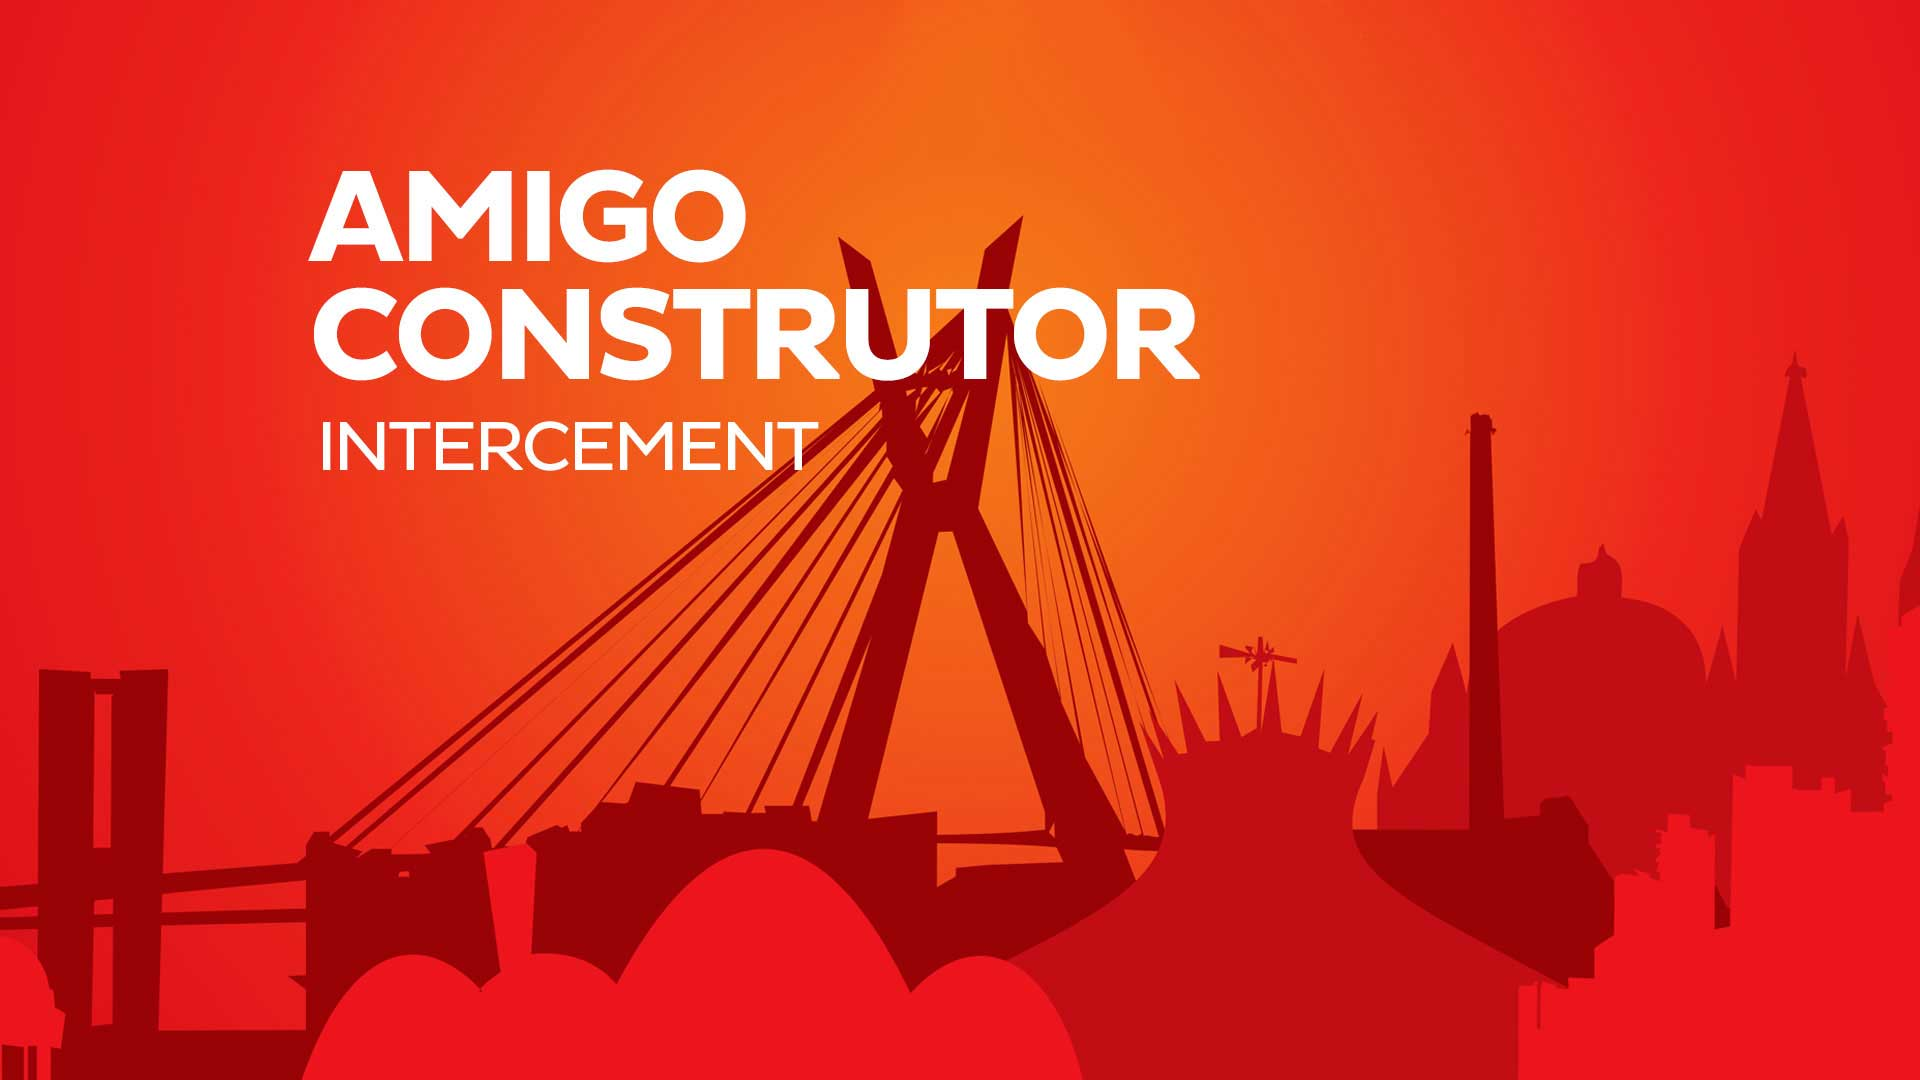 Case InterCement: Amigo Construtor